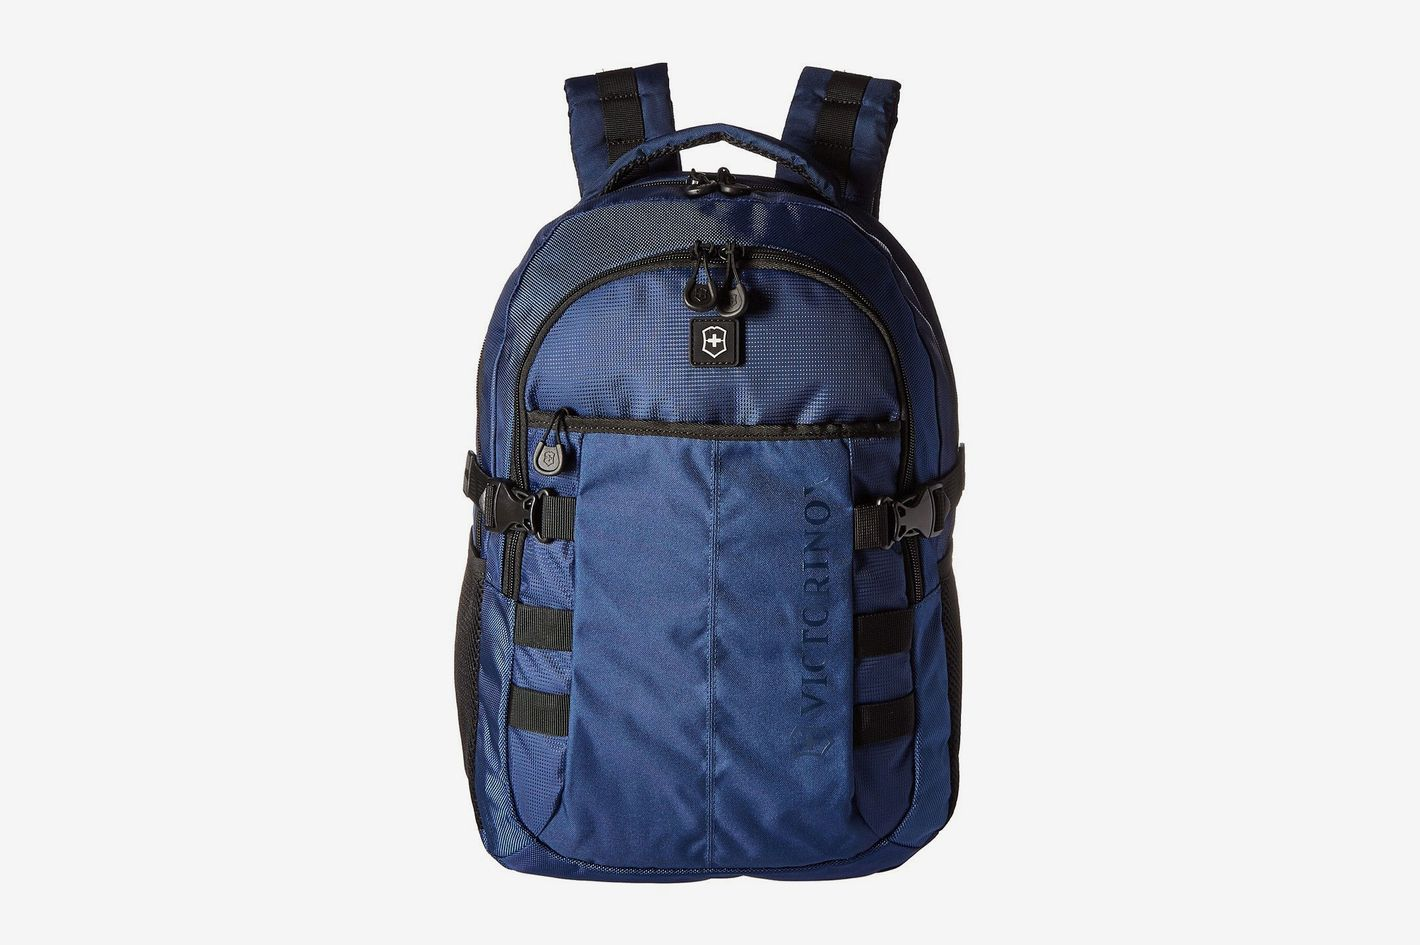 4d49f13ad125 Best laptop backpacks. Victorinox VX Sport Cadet Laptop Backpack